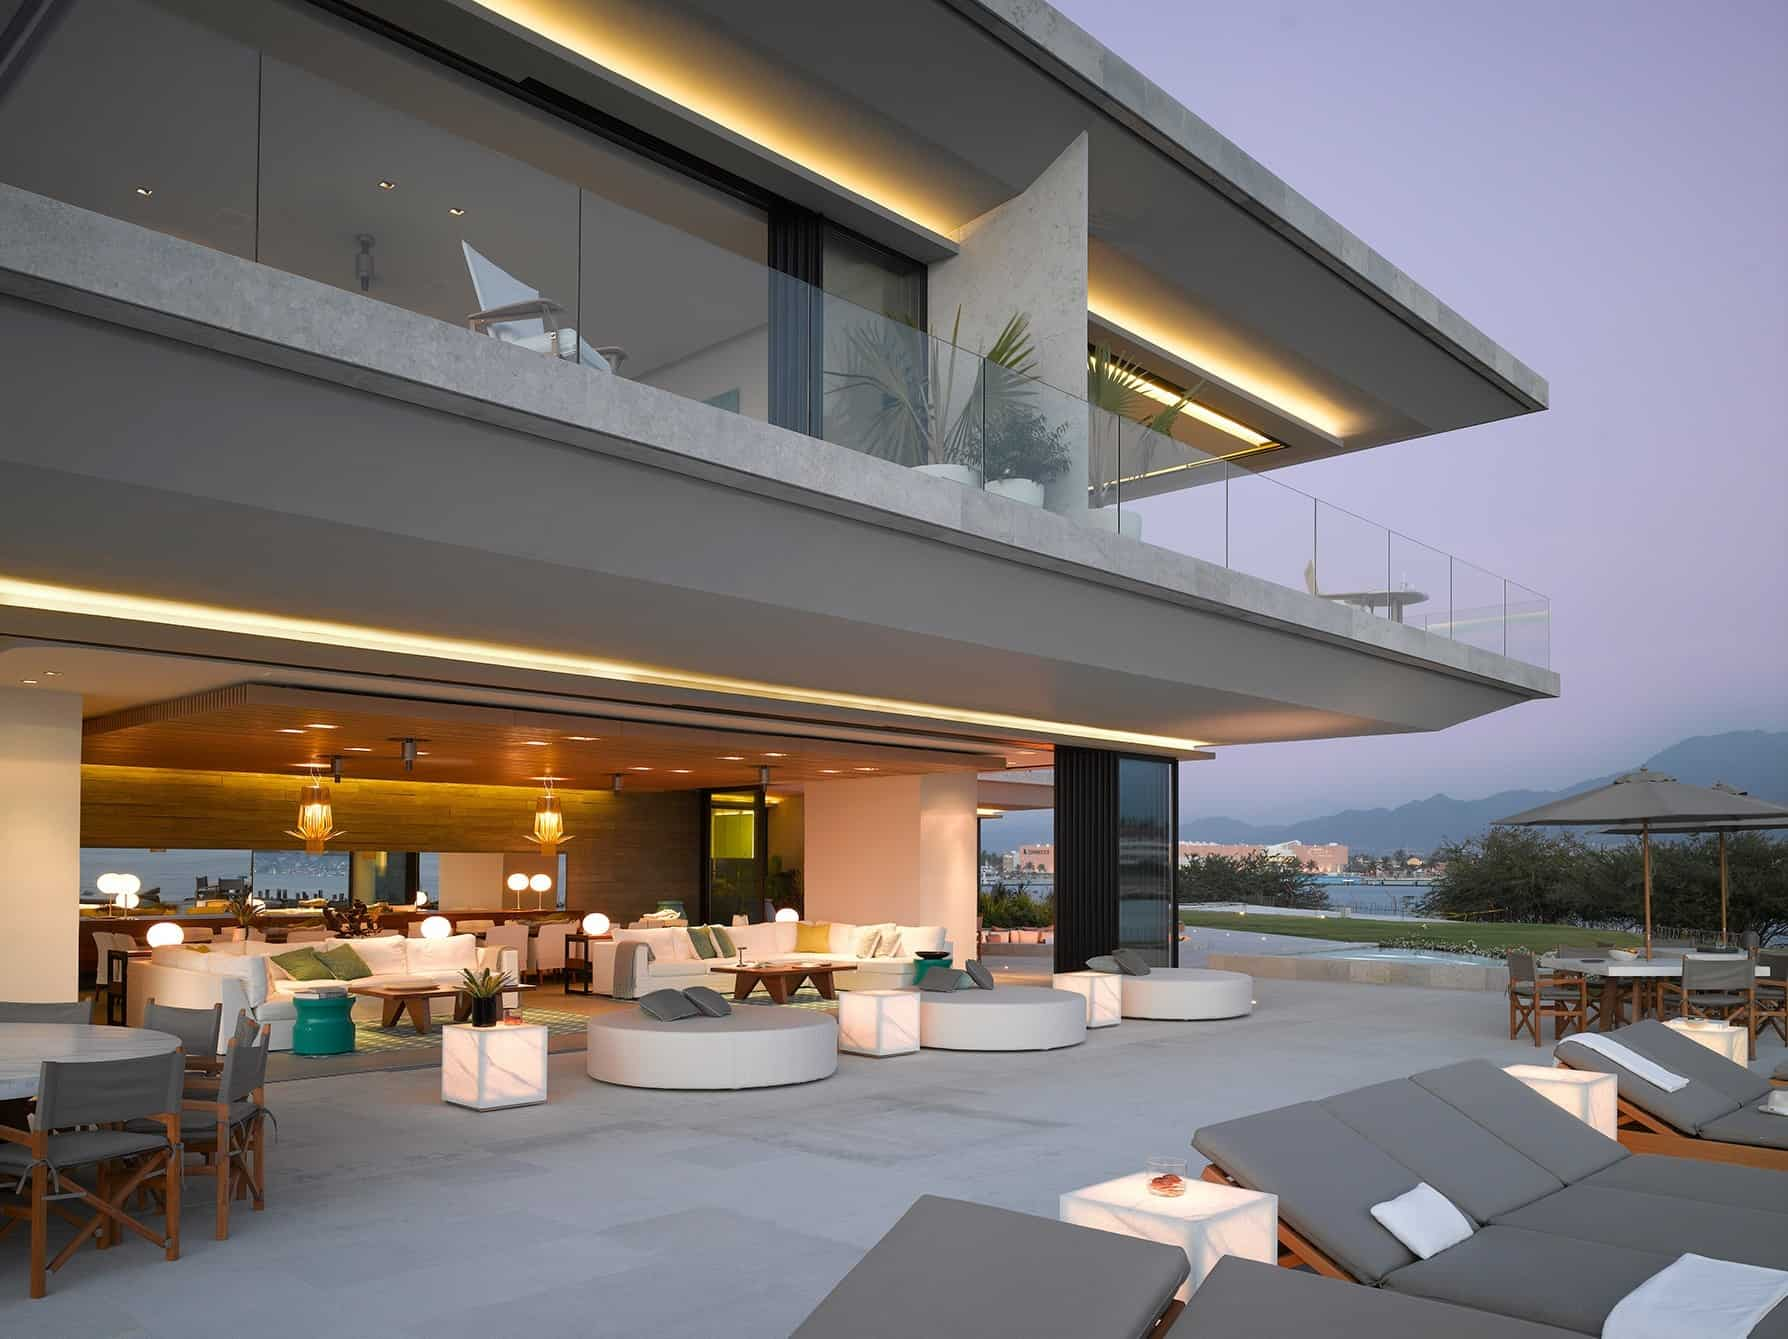 Modern-House-Architecture-Ezequiel Farca-09-1 Kindesign